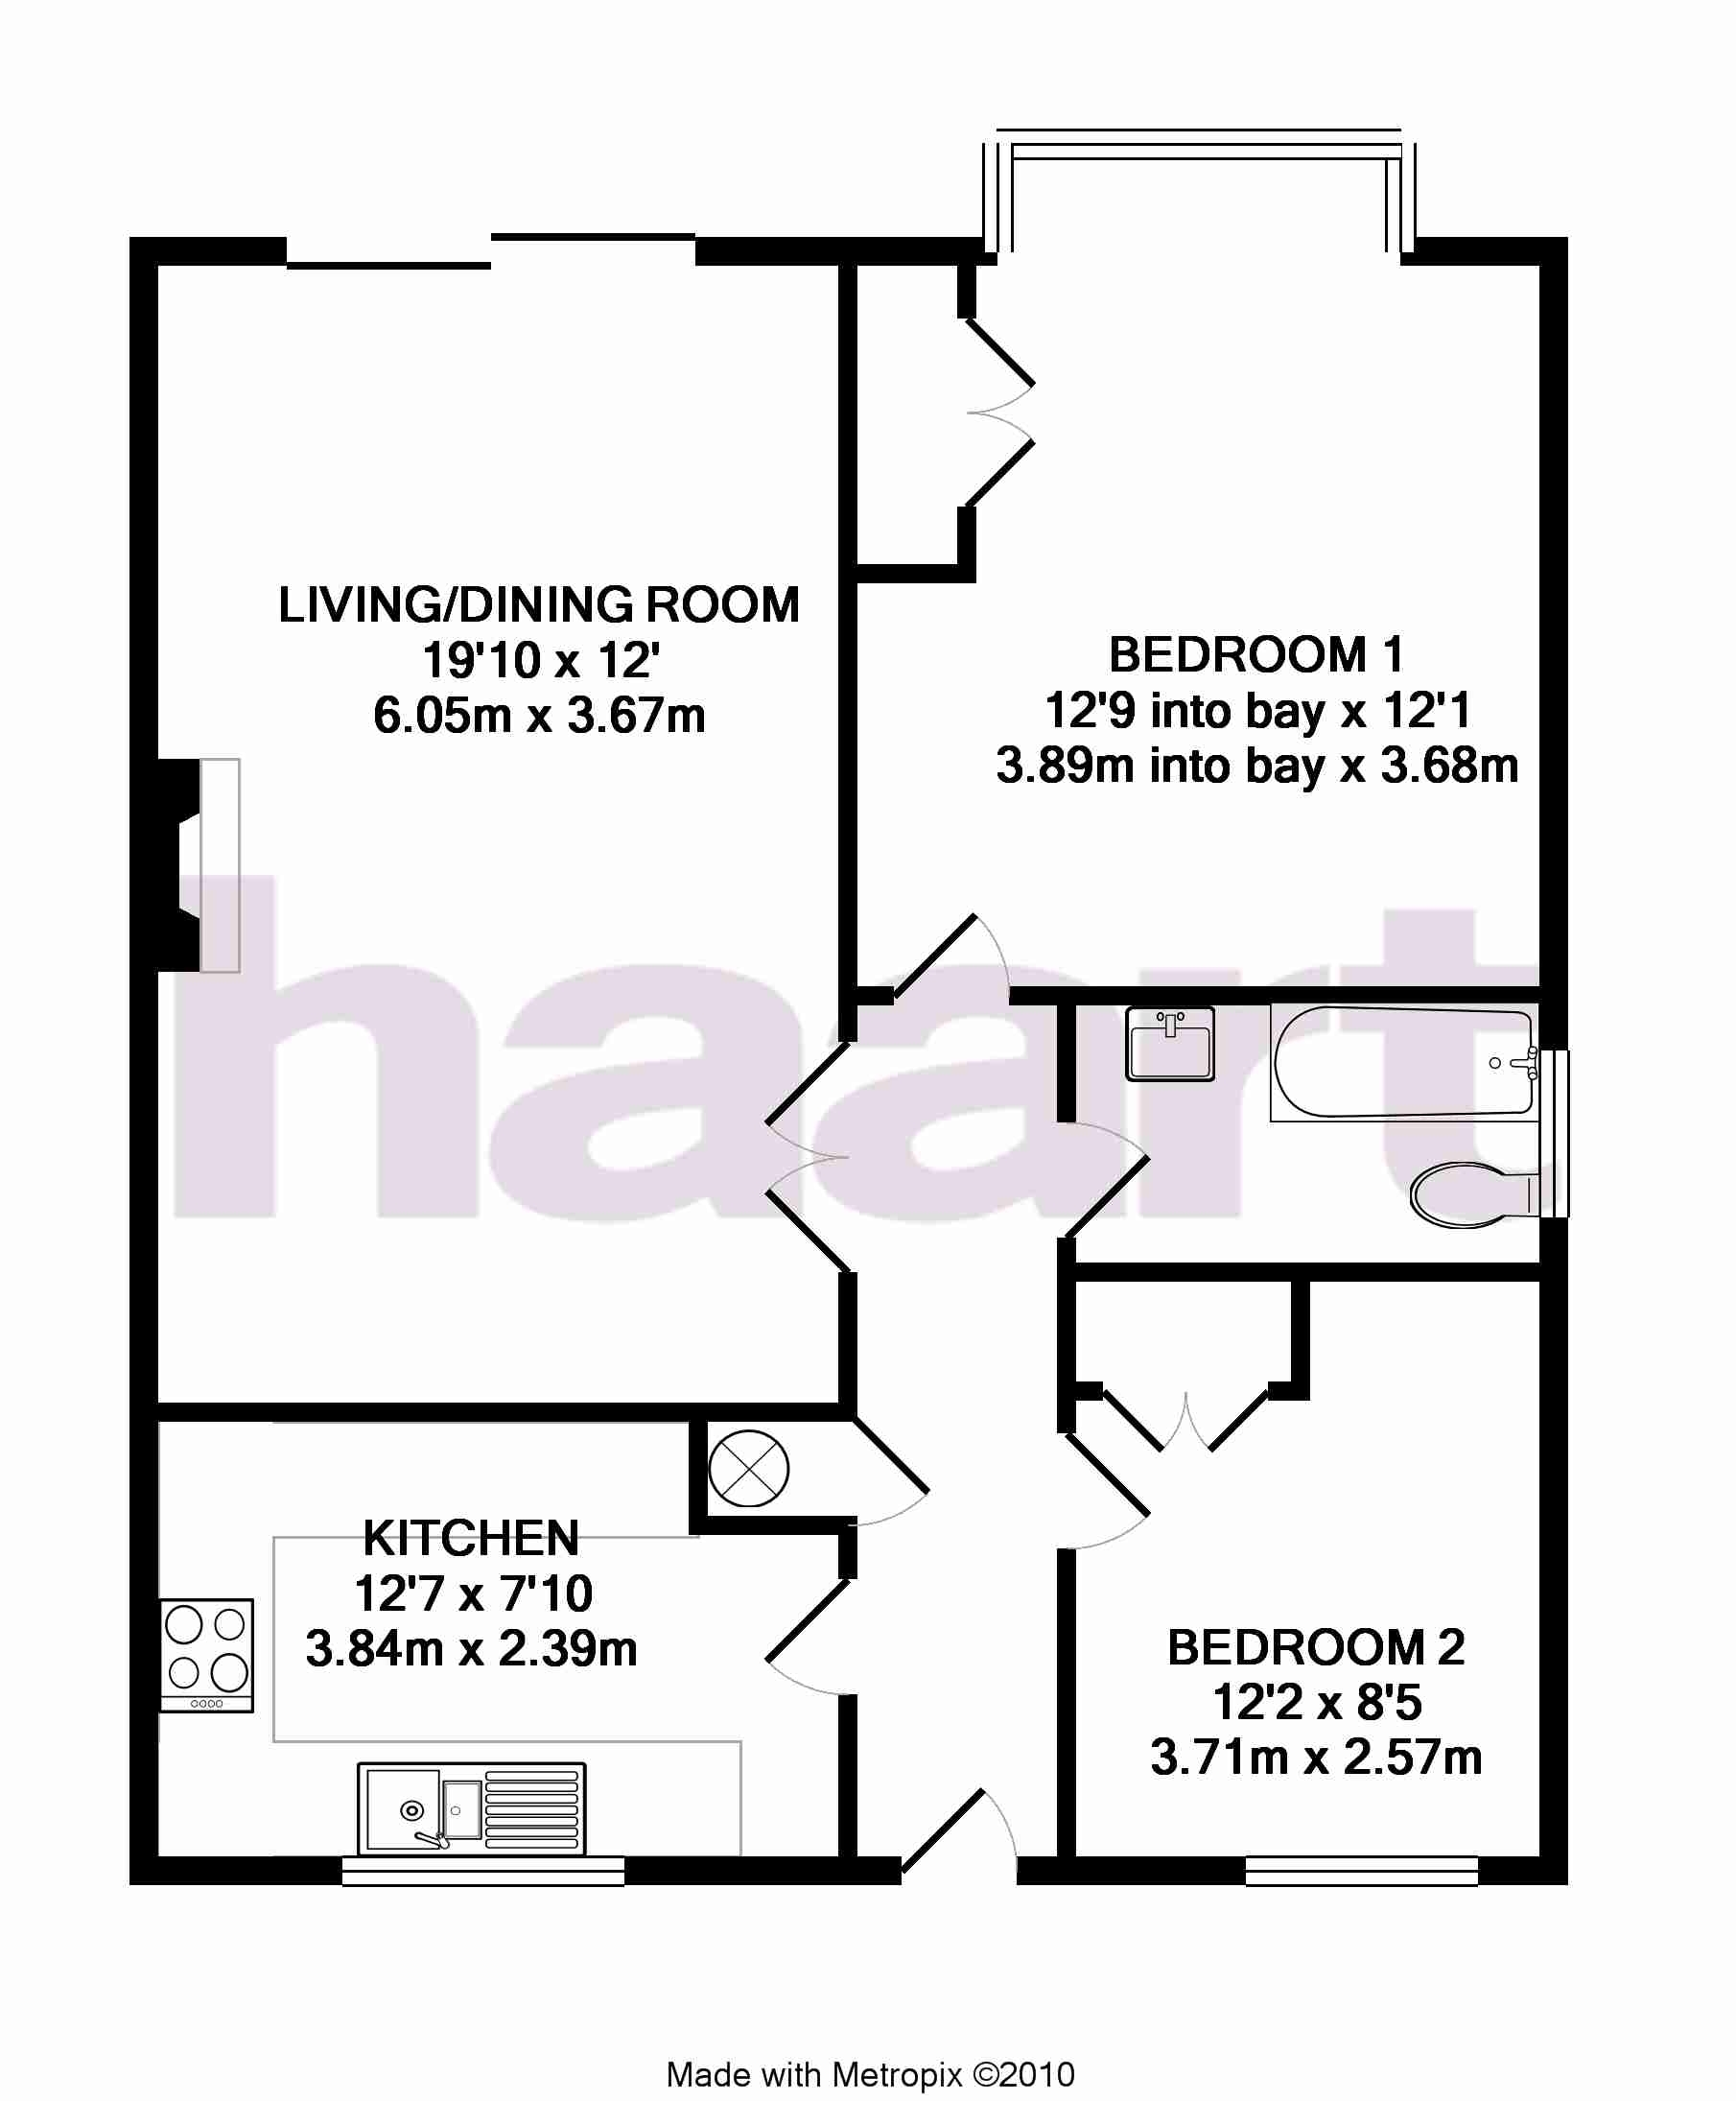 BBC - Homes - Design - Room plans